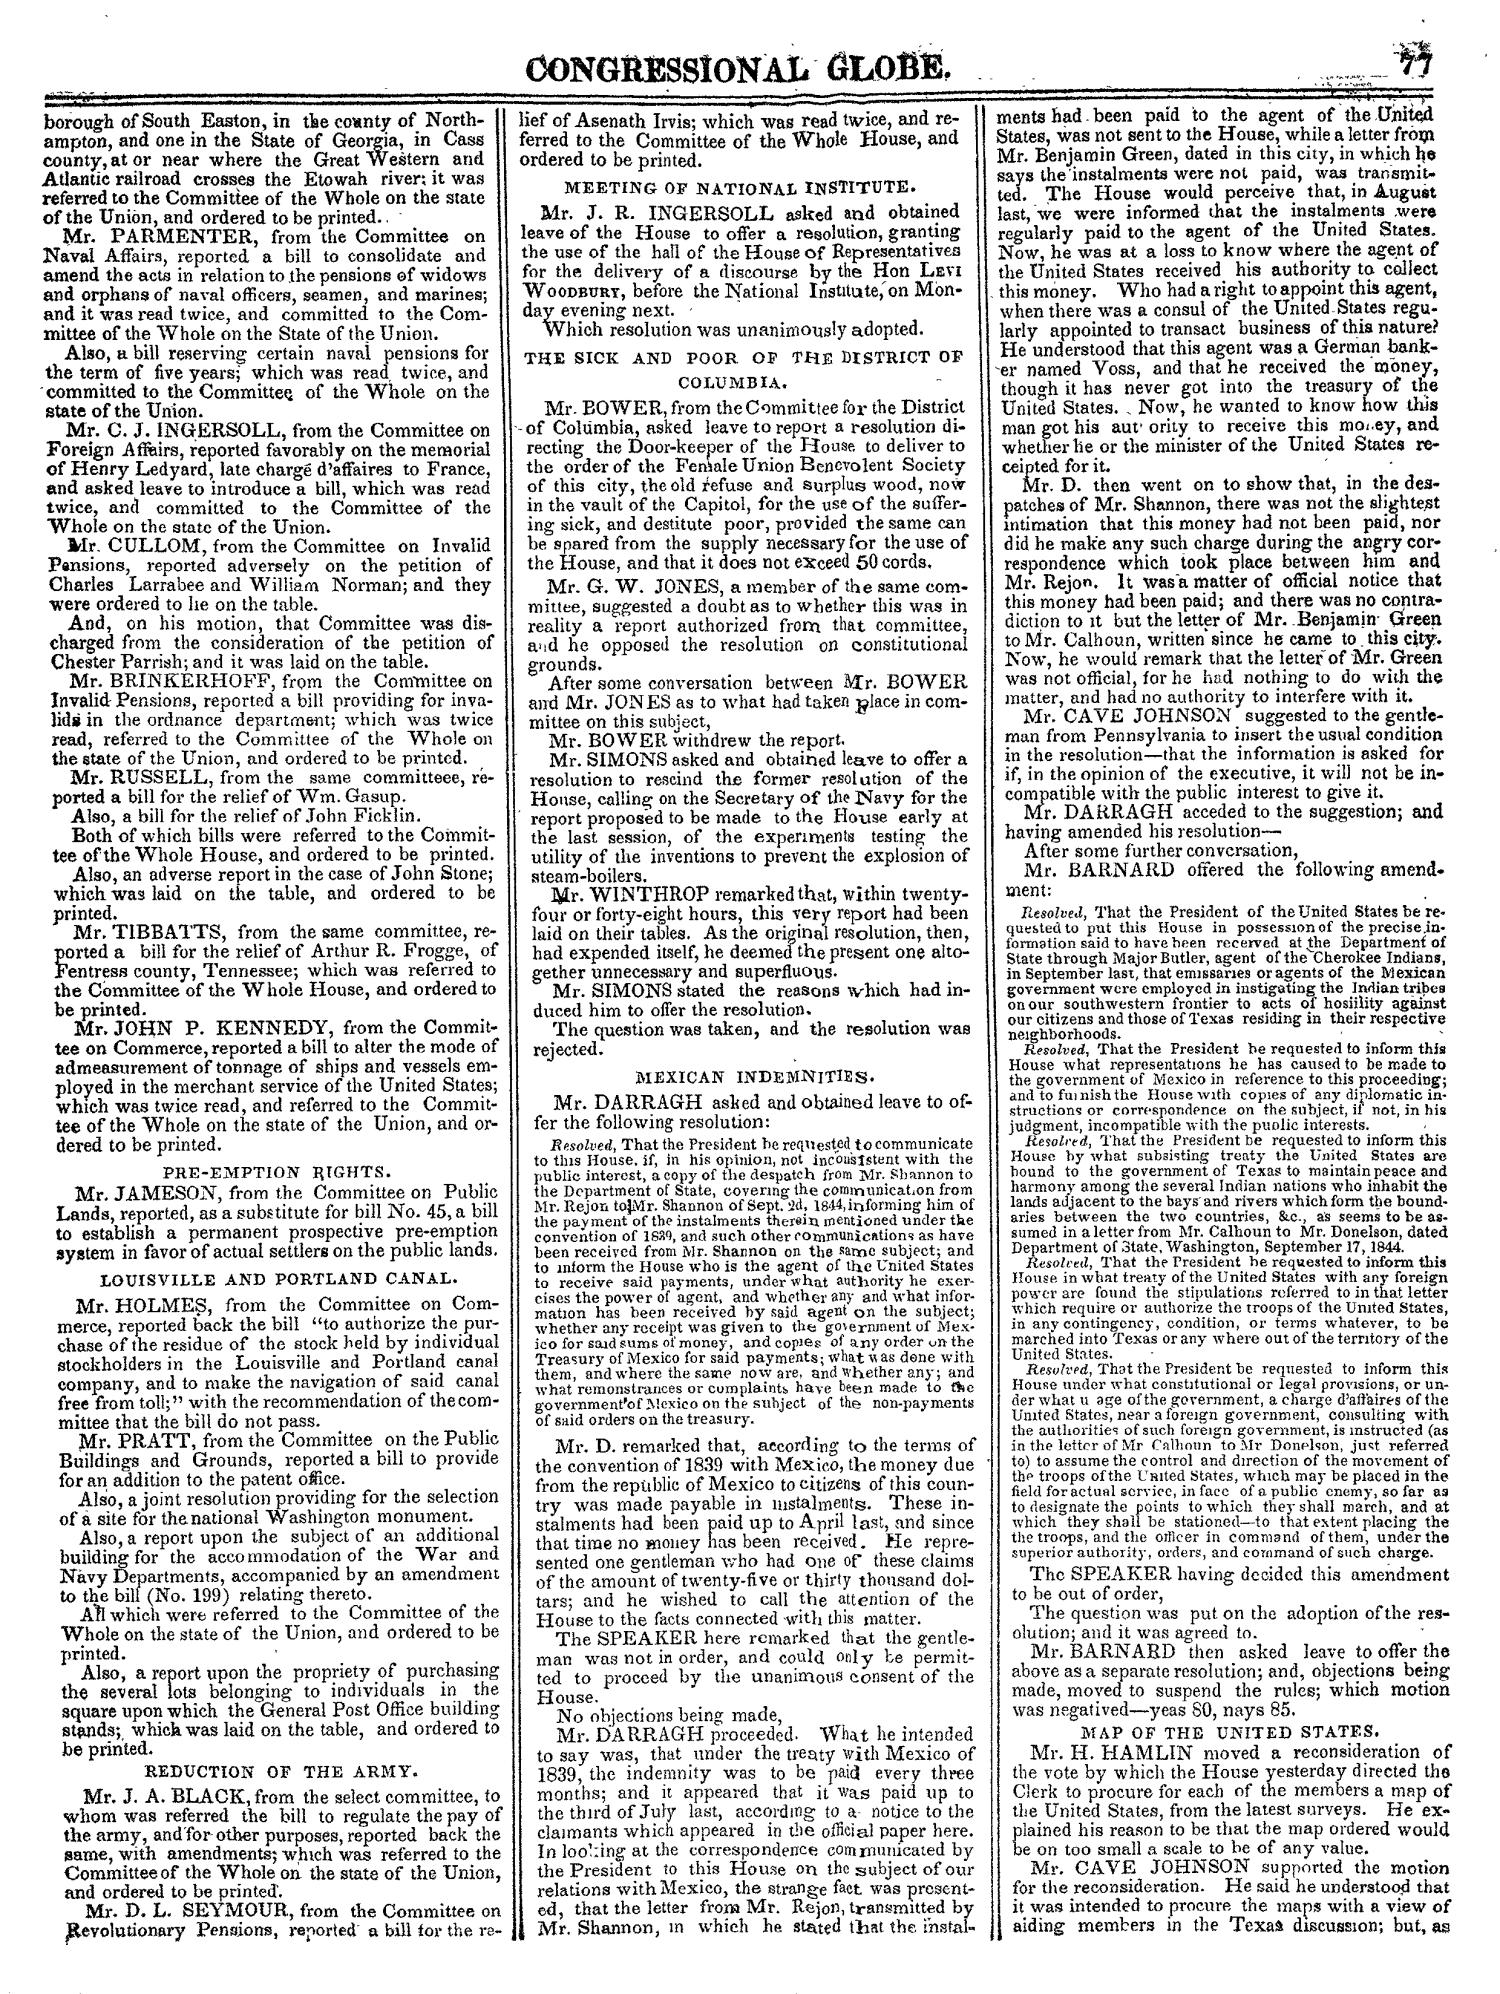 The Congressional Globe, Volume 14: Twenty-Eighth Congress, Second Session                                                                                                      77